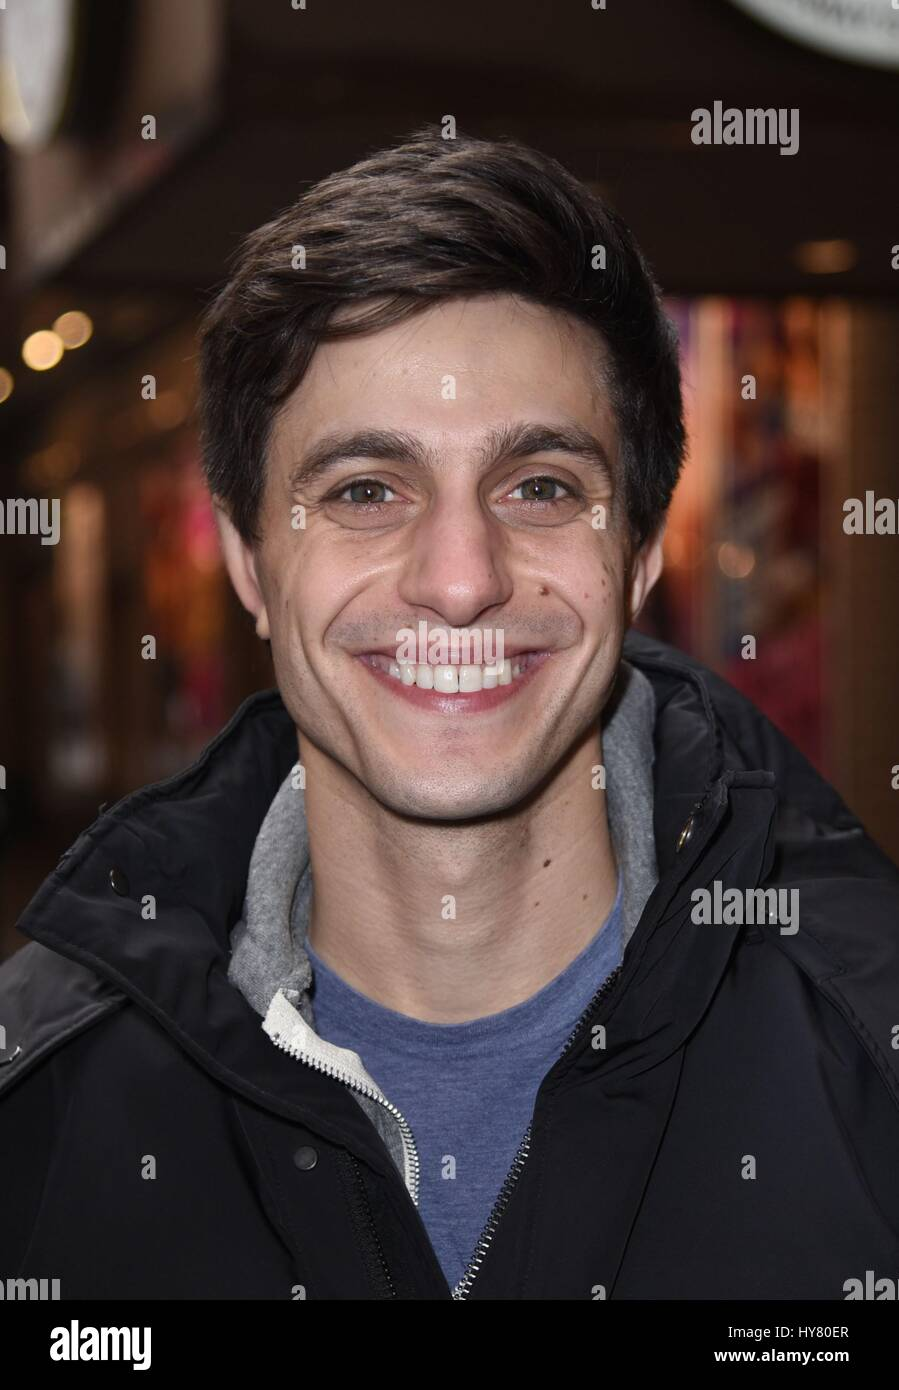 Gideon Glick exits the Booth Theater after his play 'Significant Other' out and about for Celebrity Candids - Stock Image